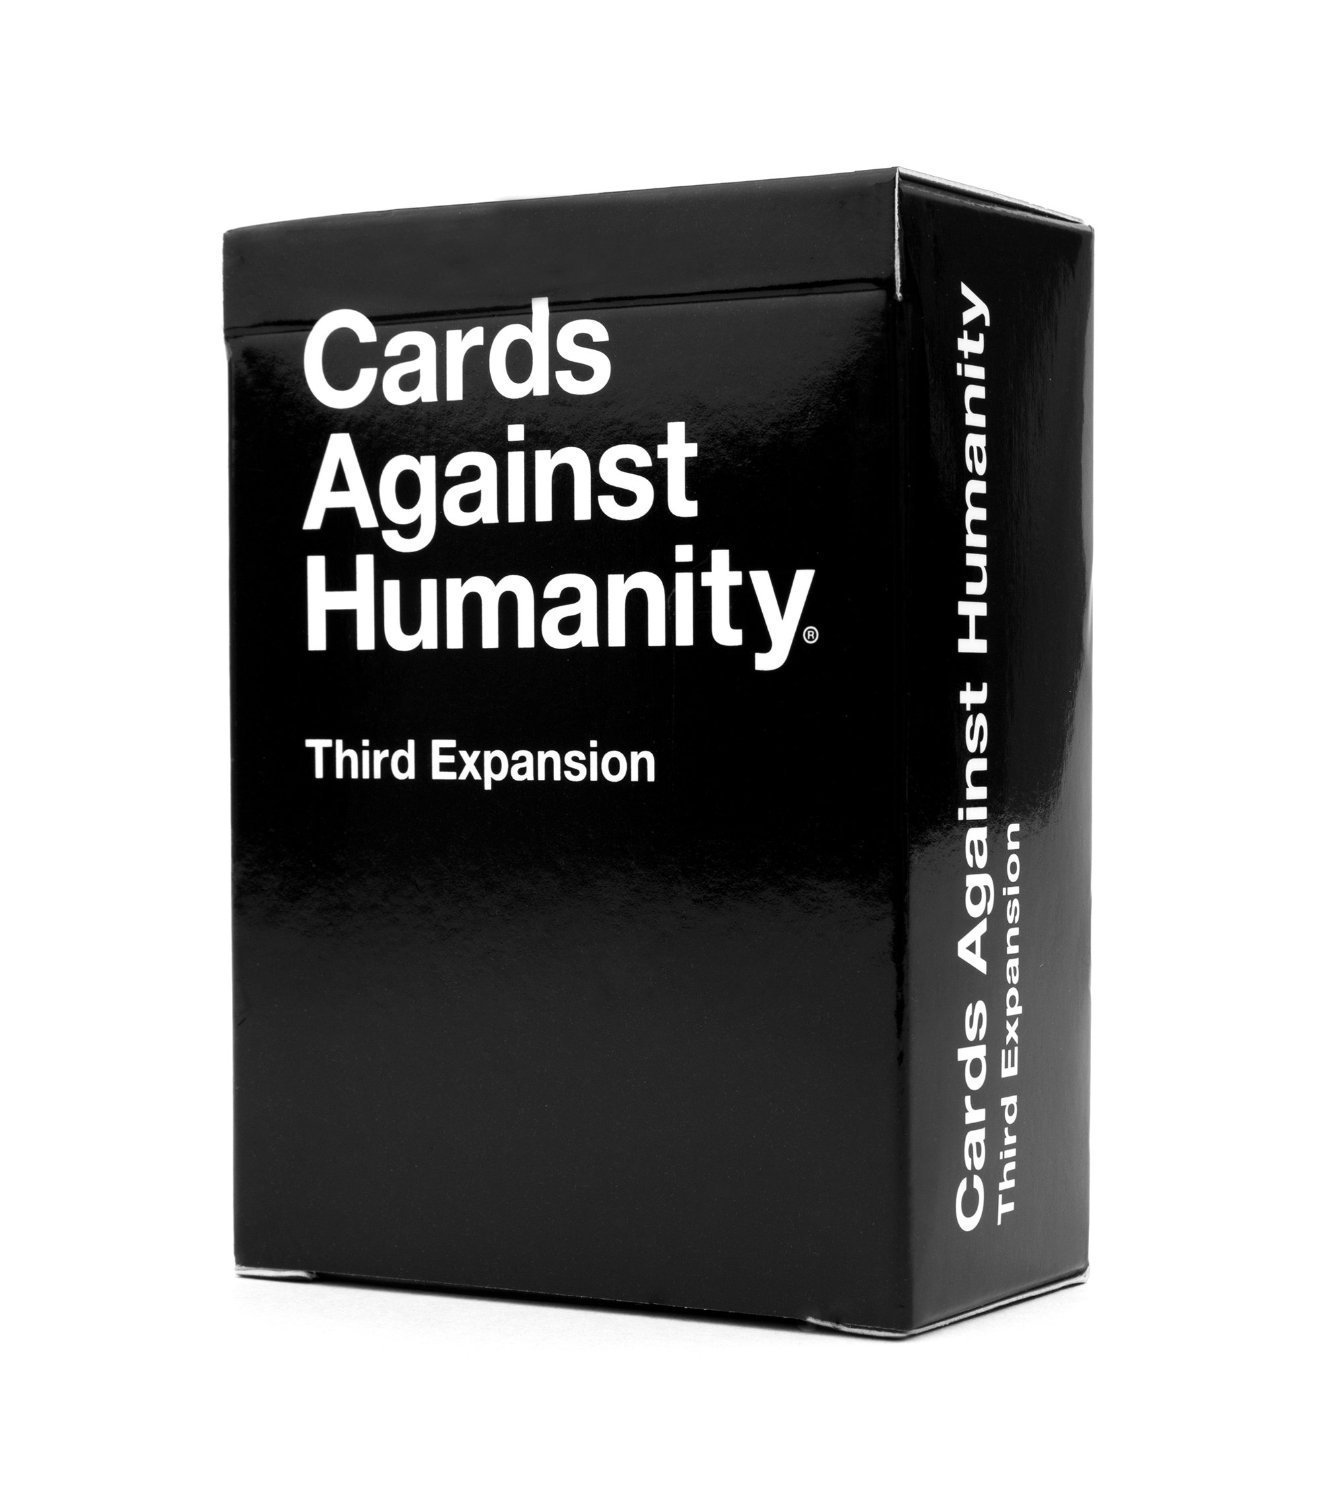 cards against humanity card games amazon cards against humanity third expansion